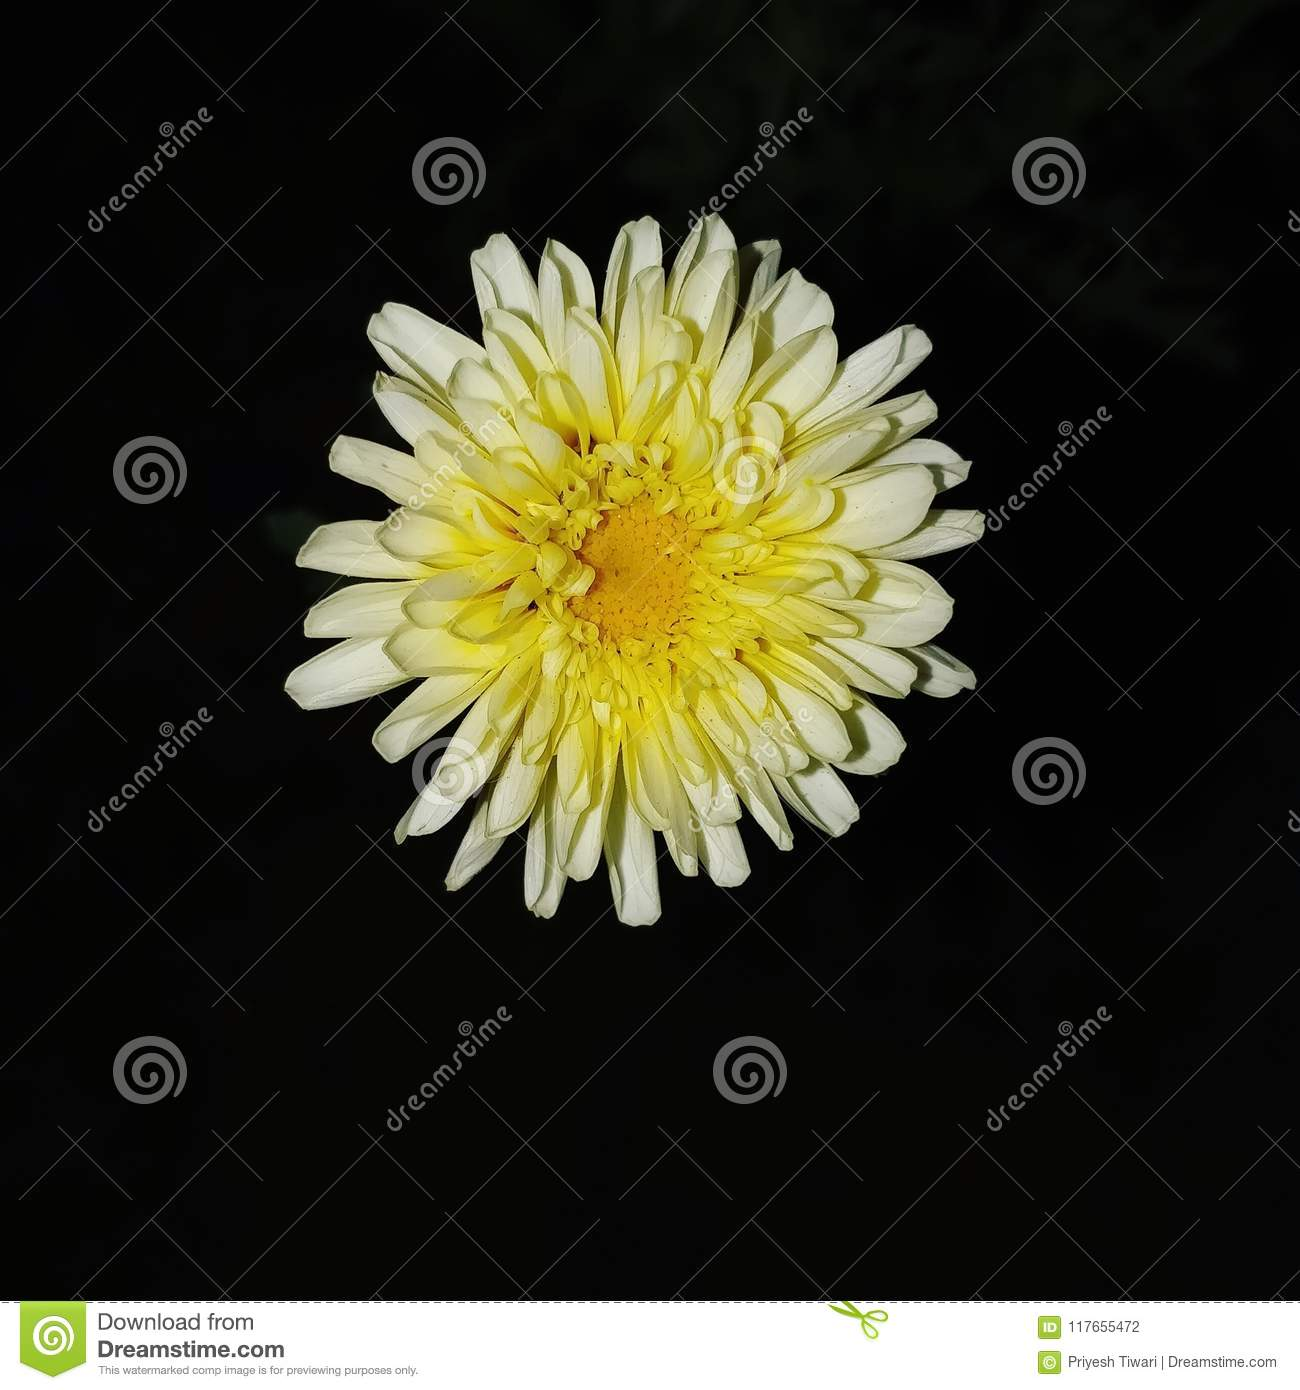 the nigh flower daisy stock photo. image of flower, nature - 117655472